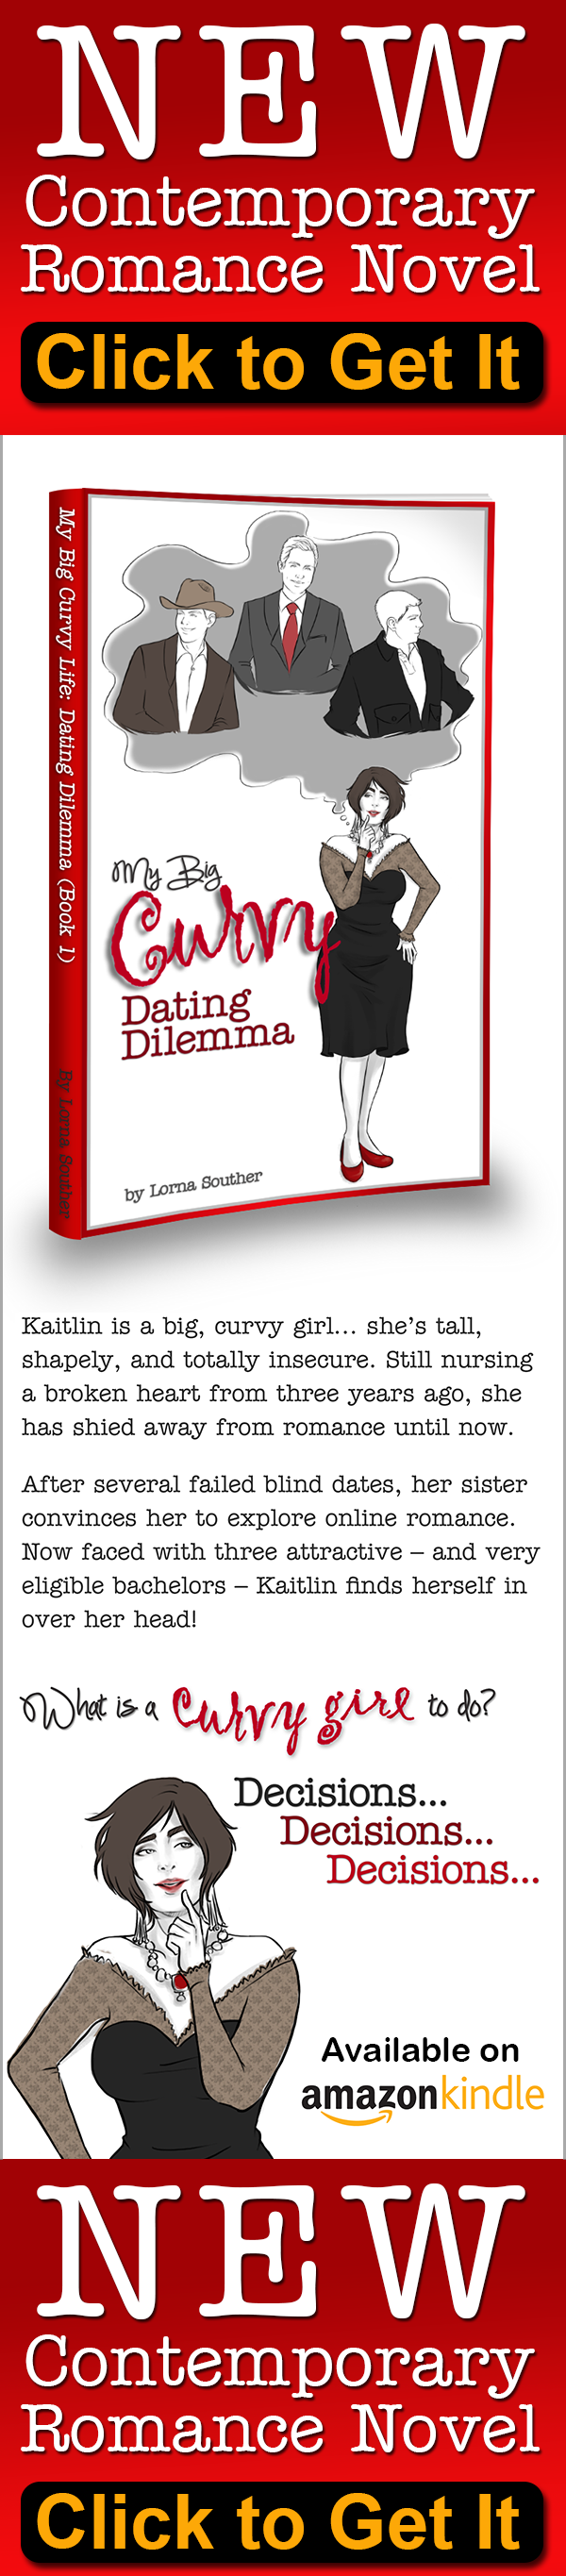 my-big-curvy-dating-dilemma-graphic2